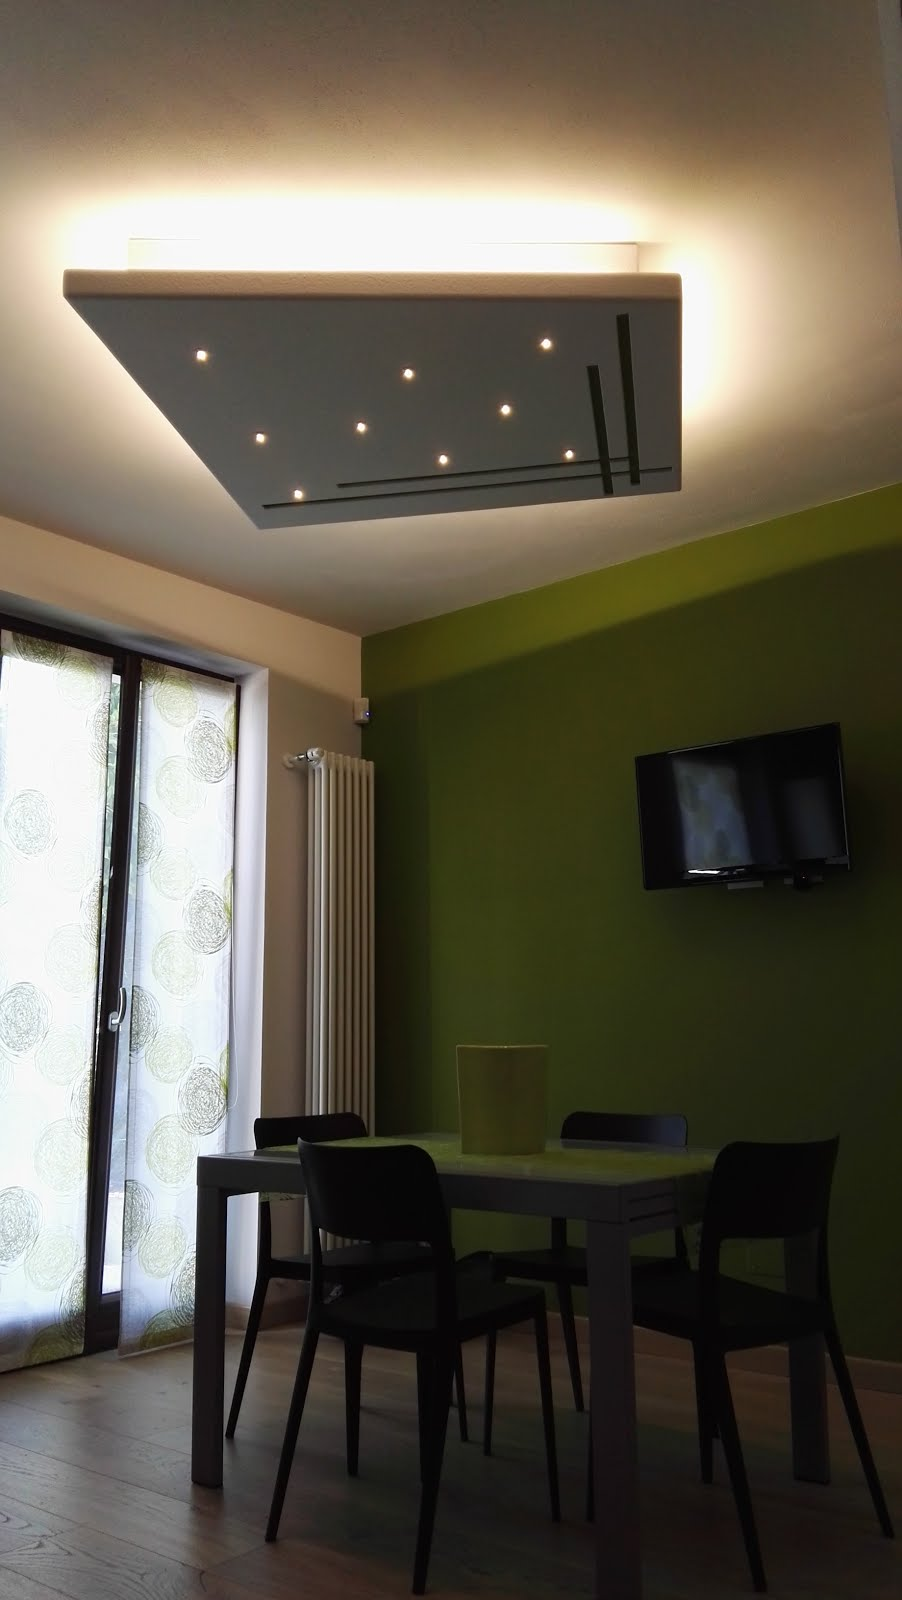 Illuminazione led casa lampadari a led di design forme di for Illuminazione a led